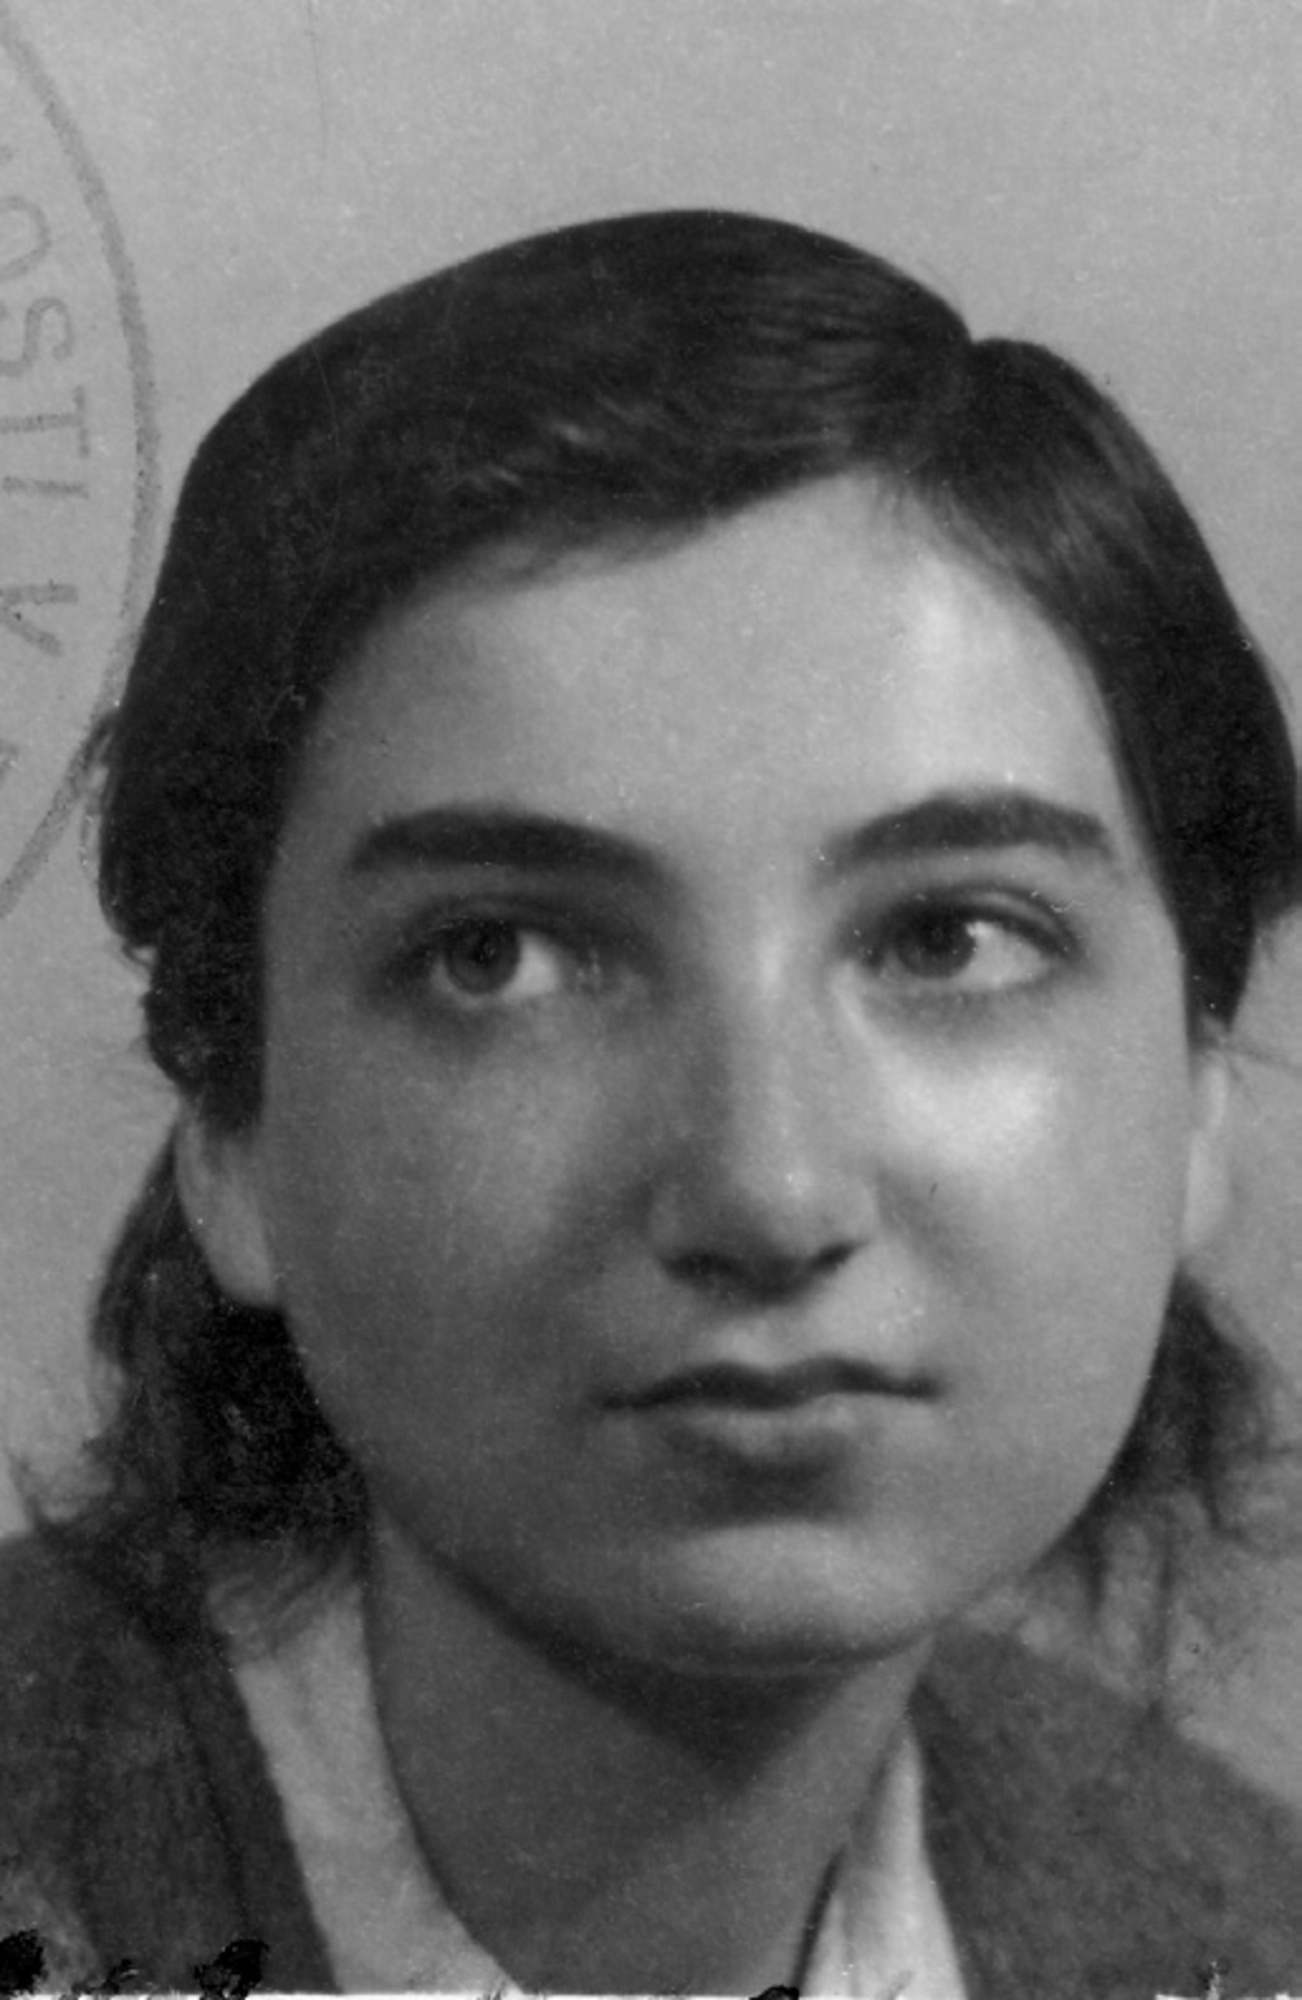 Hana Bořkovcová in 1945 on a picture from her repatriation card